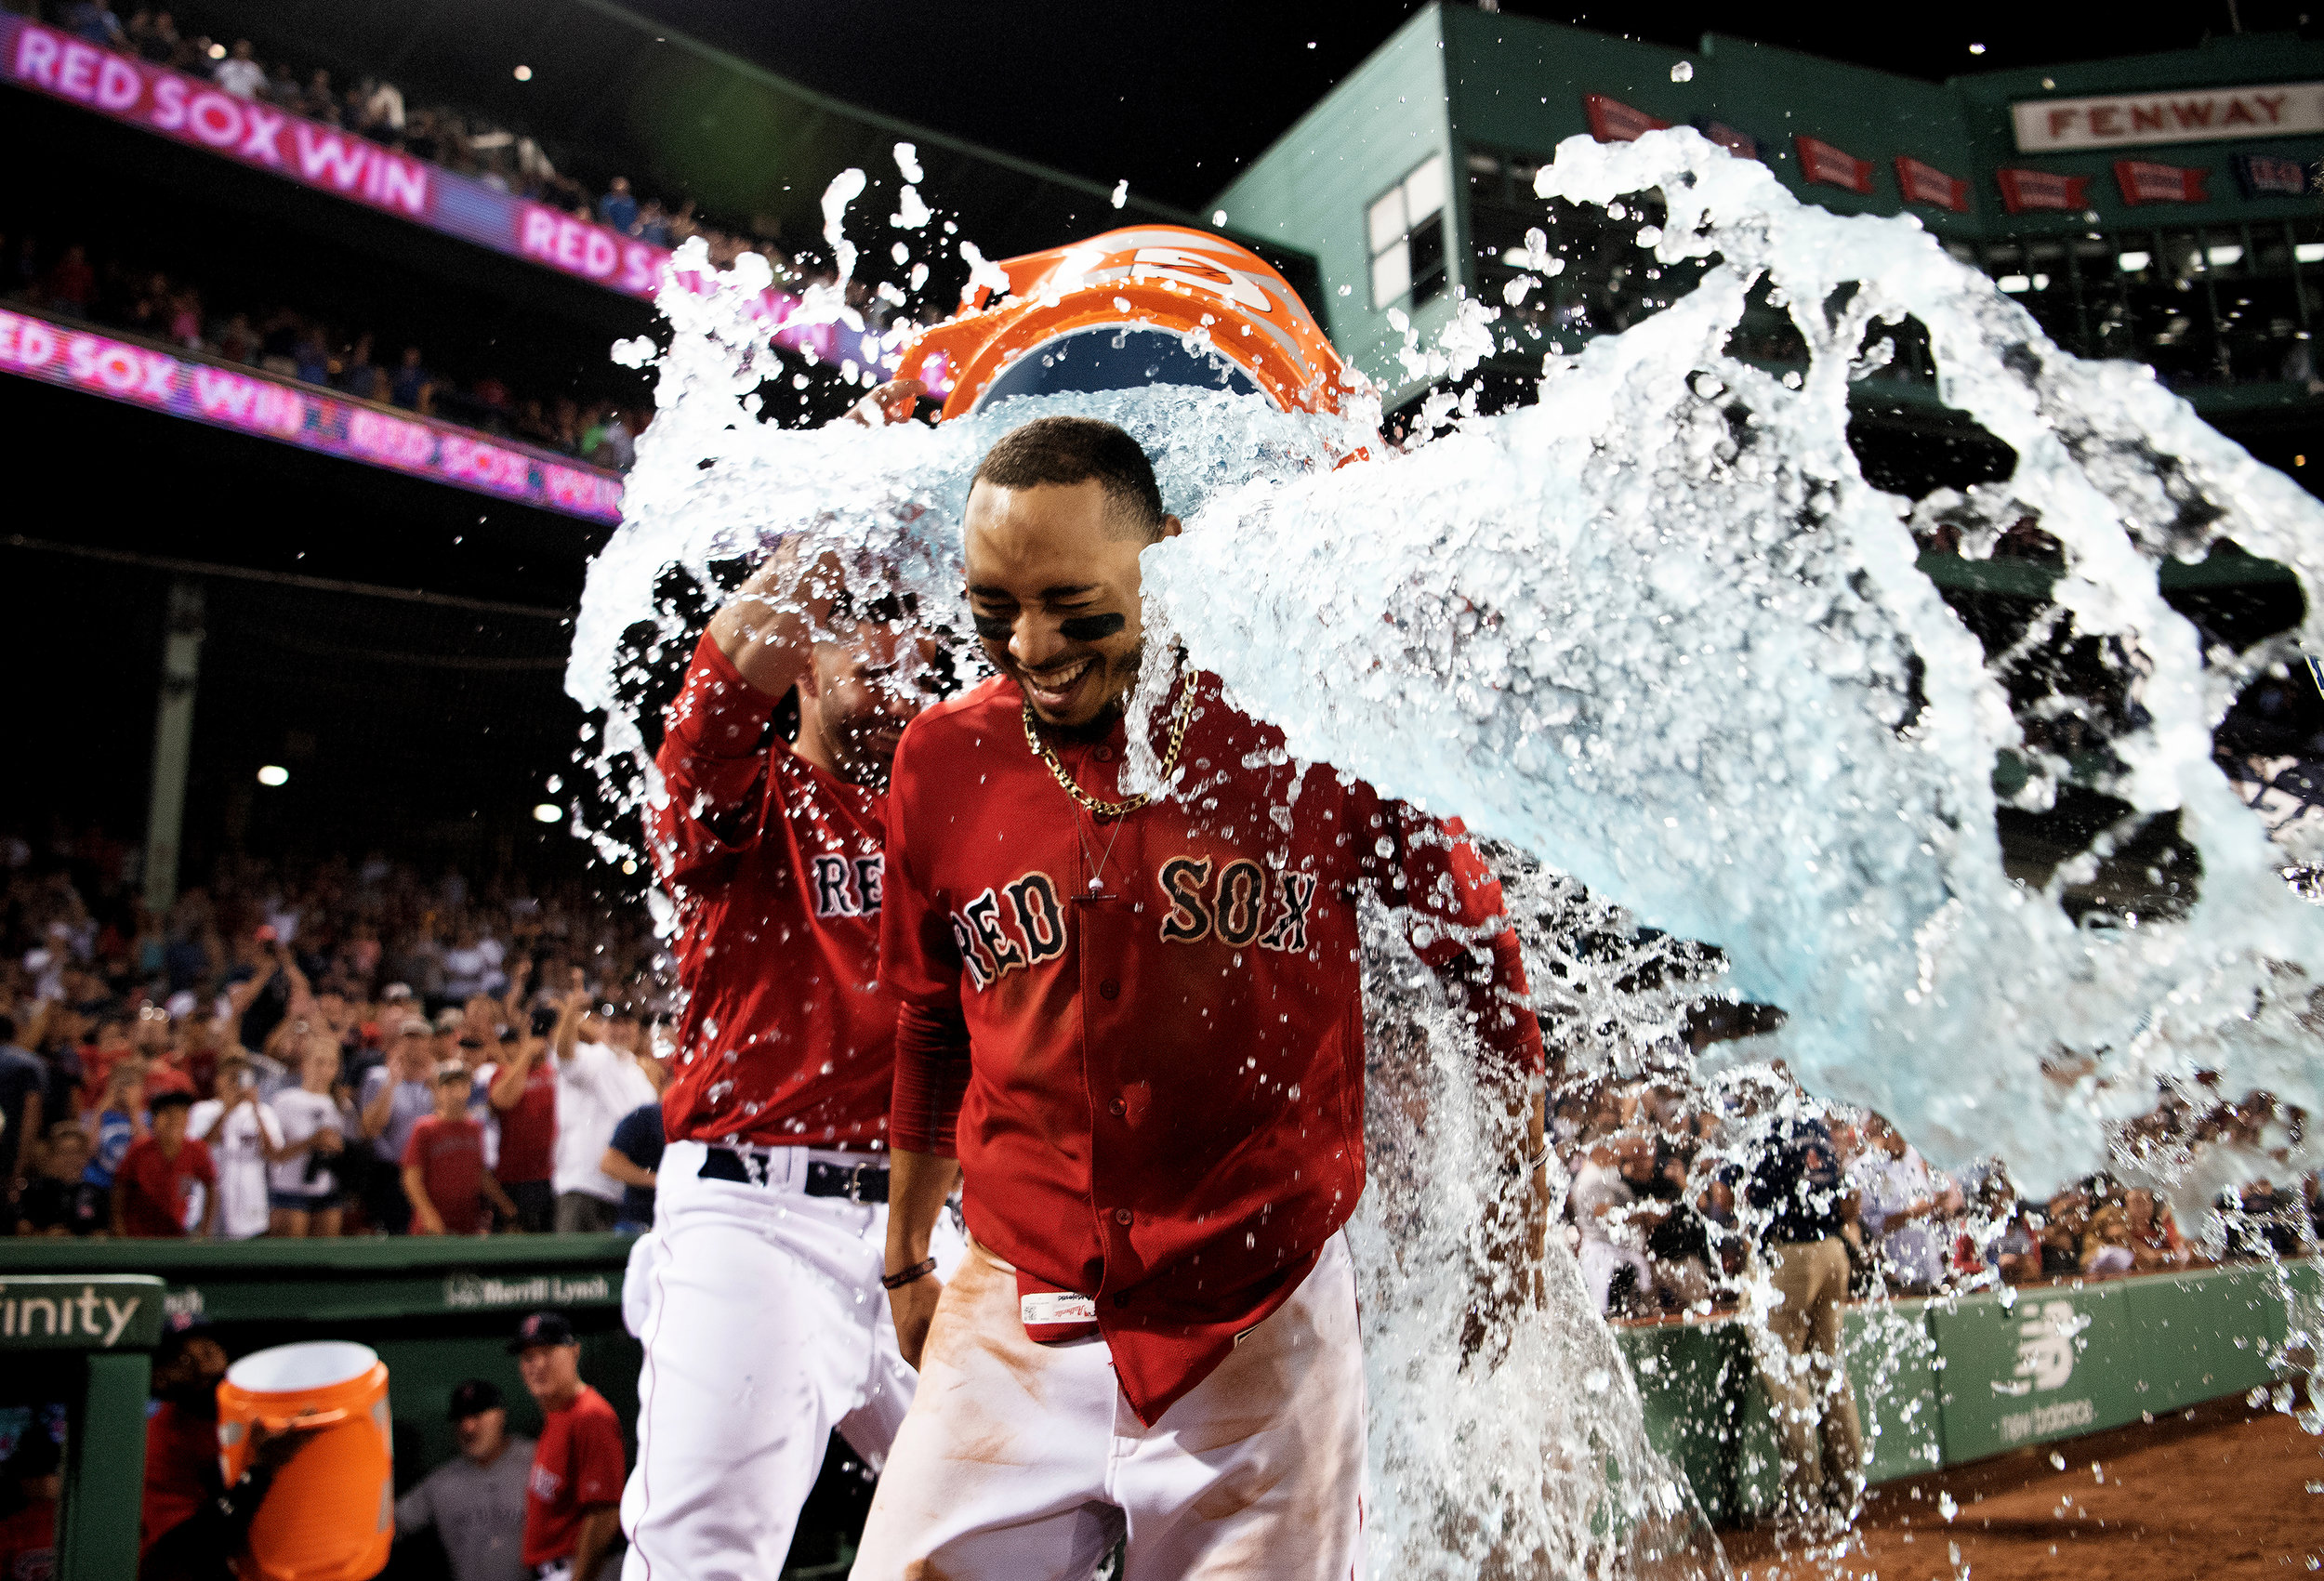 Boston Red Sox outfielder Mookie Betts receives a Gatorade shower after hitting a home run to end the game in the 10th inning during the game against the Minnesota Twins at Fenway Park in Boston, Massachusetts on Friday, July 27, 2018.